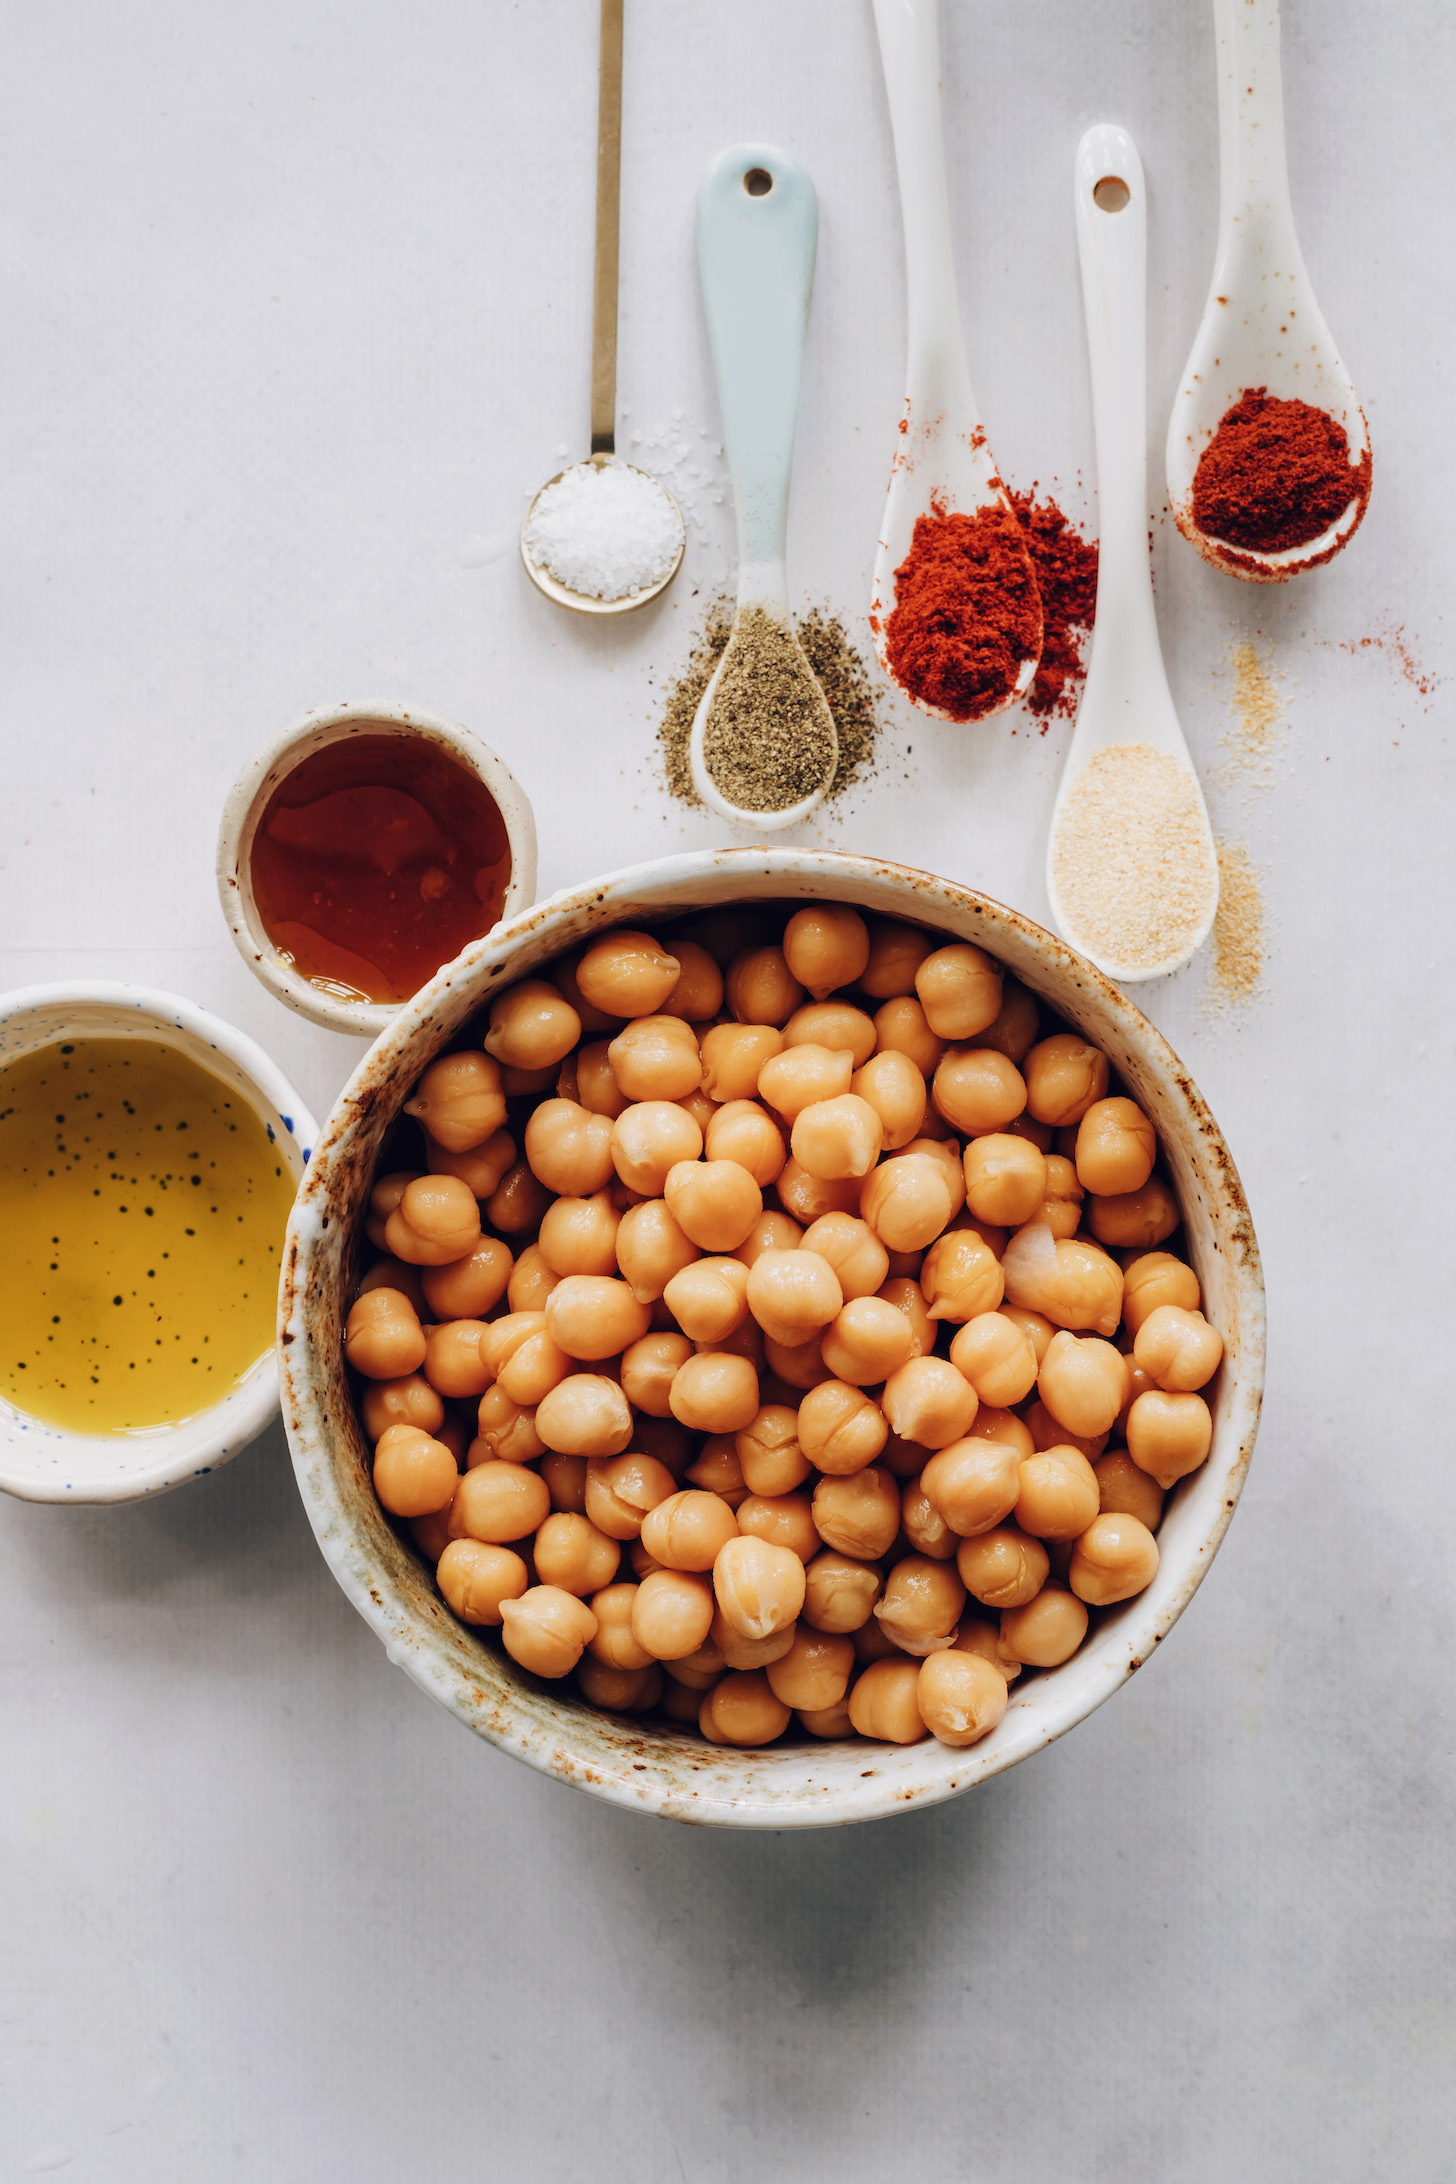 Bowl of chickpeas next to avocado oil, maple syrup, and spices